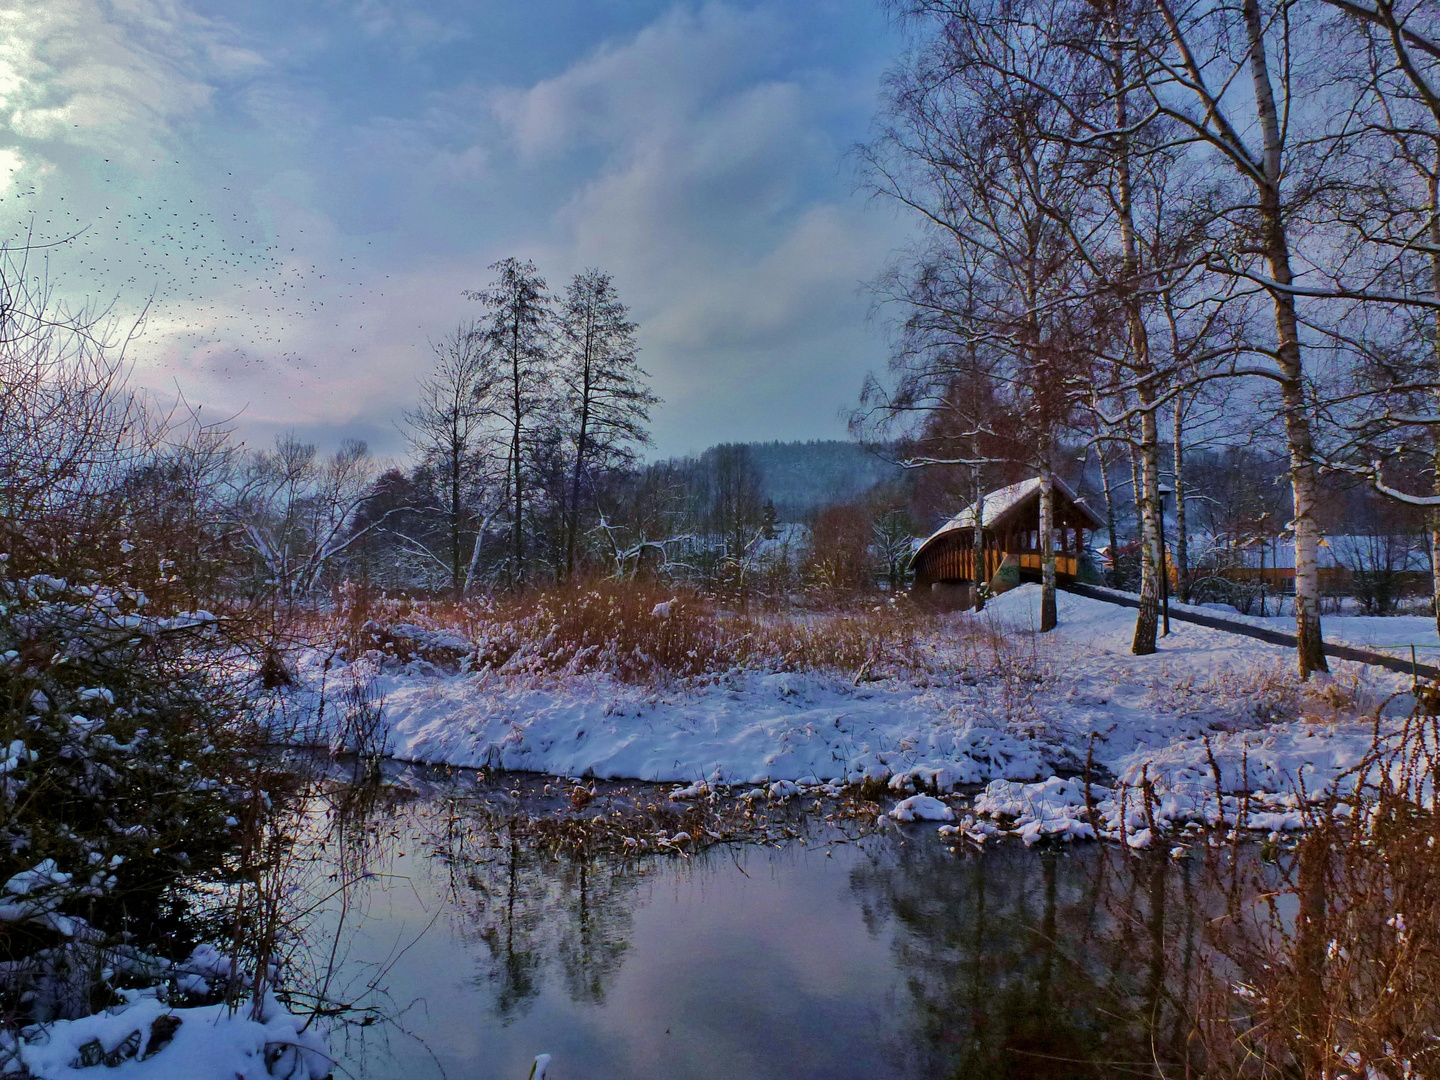 Winter an der Tauber